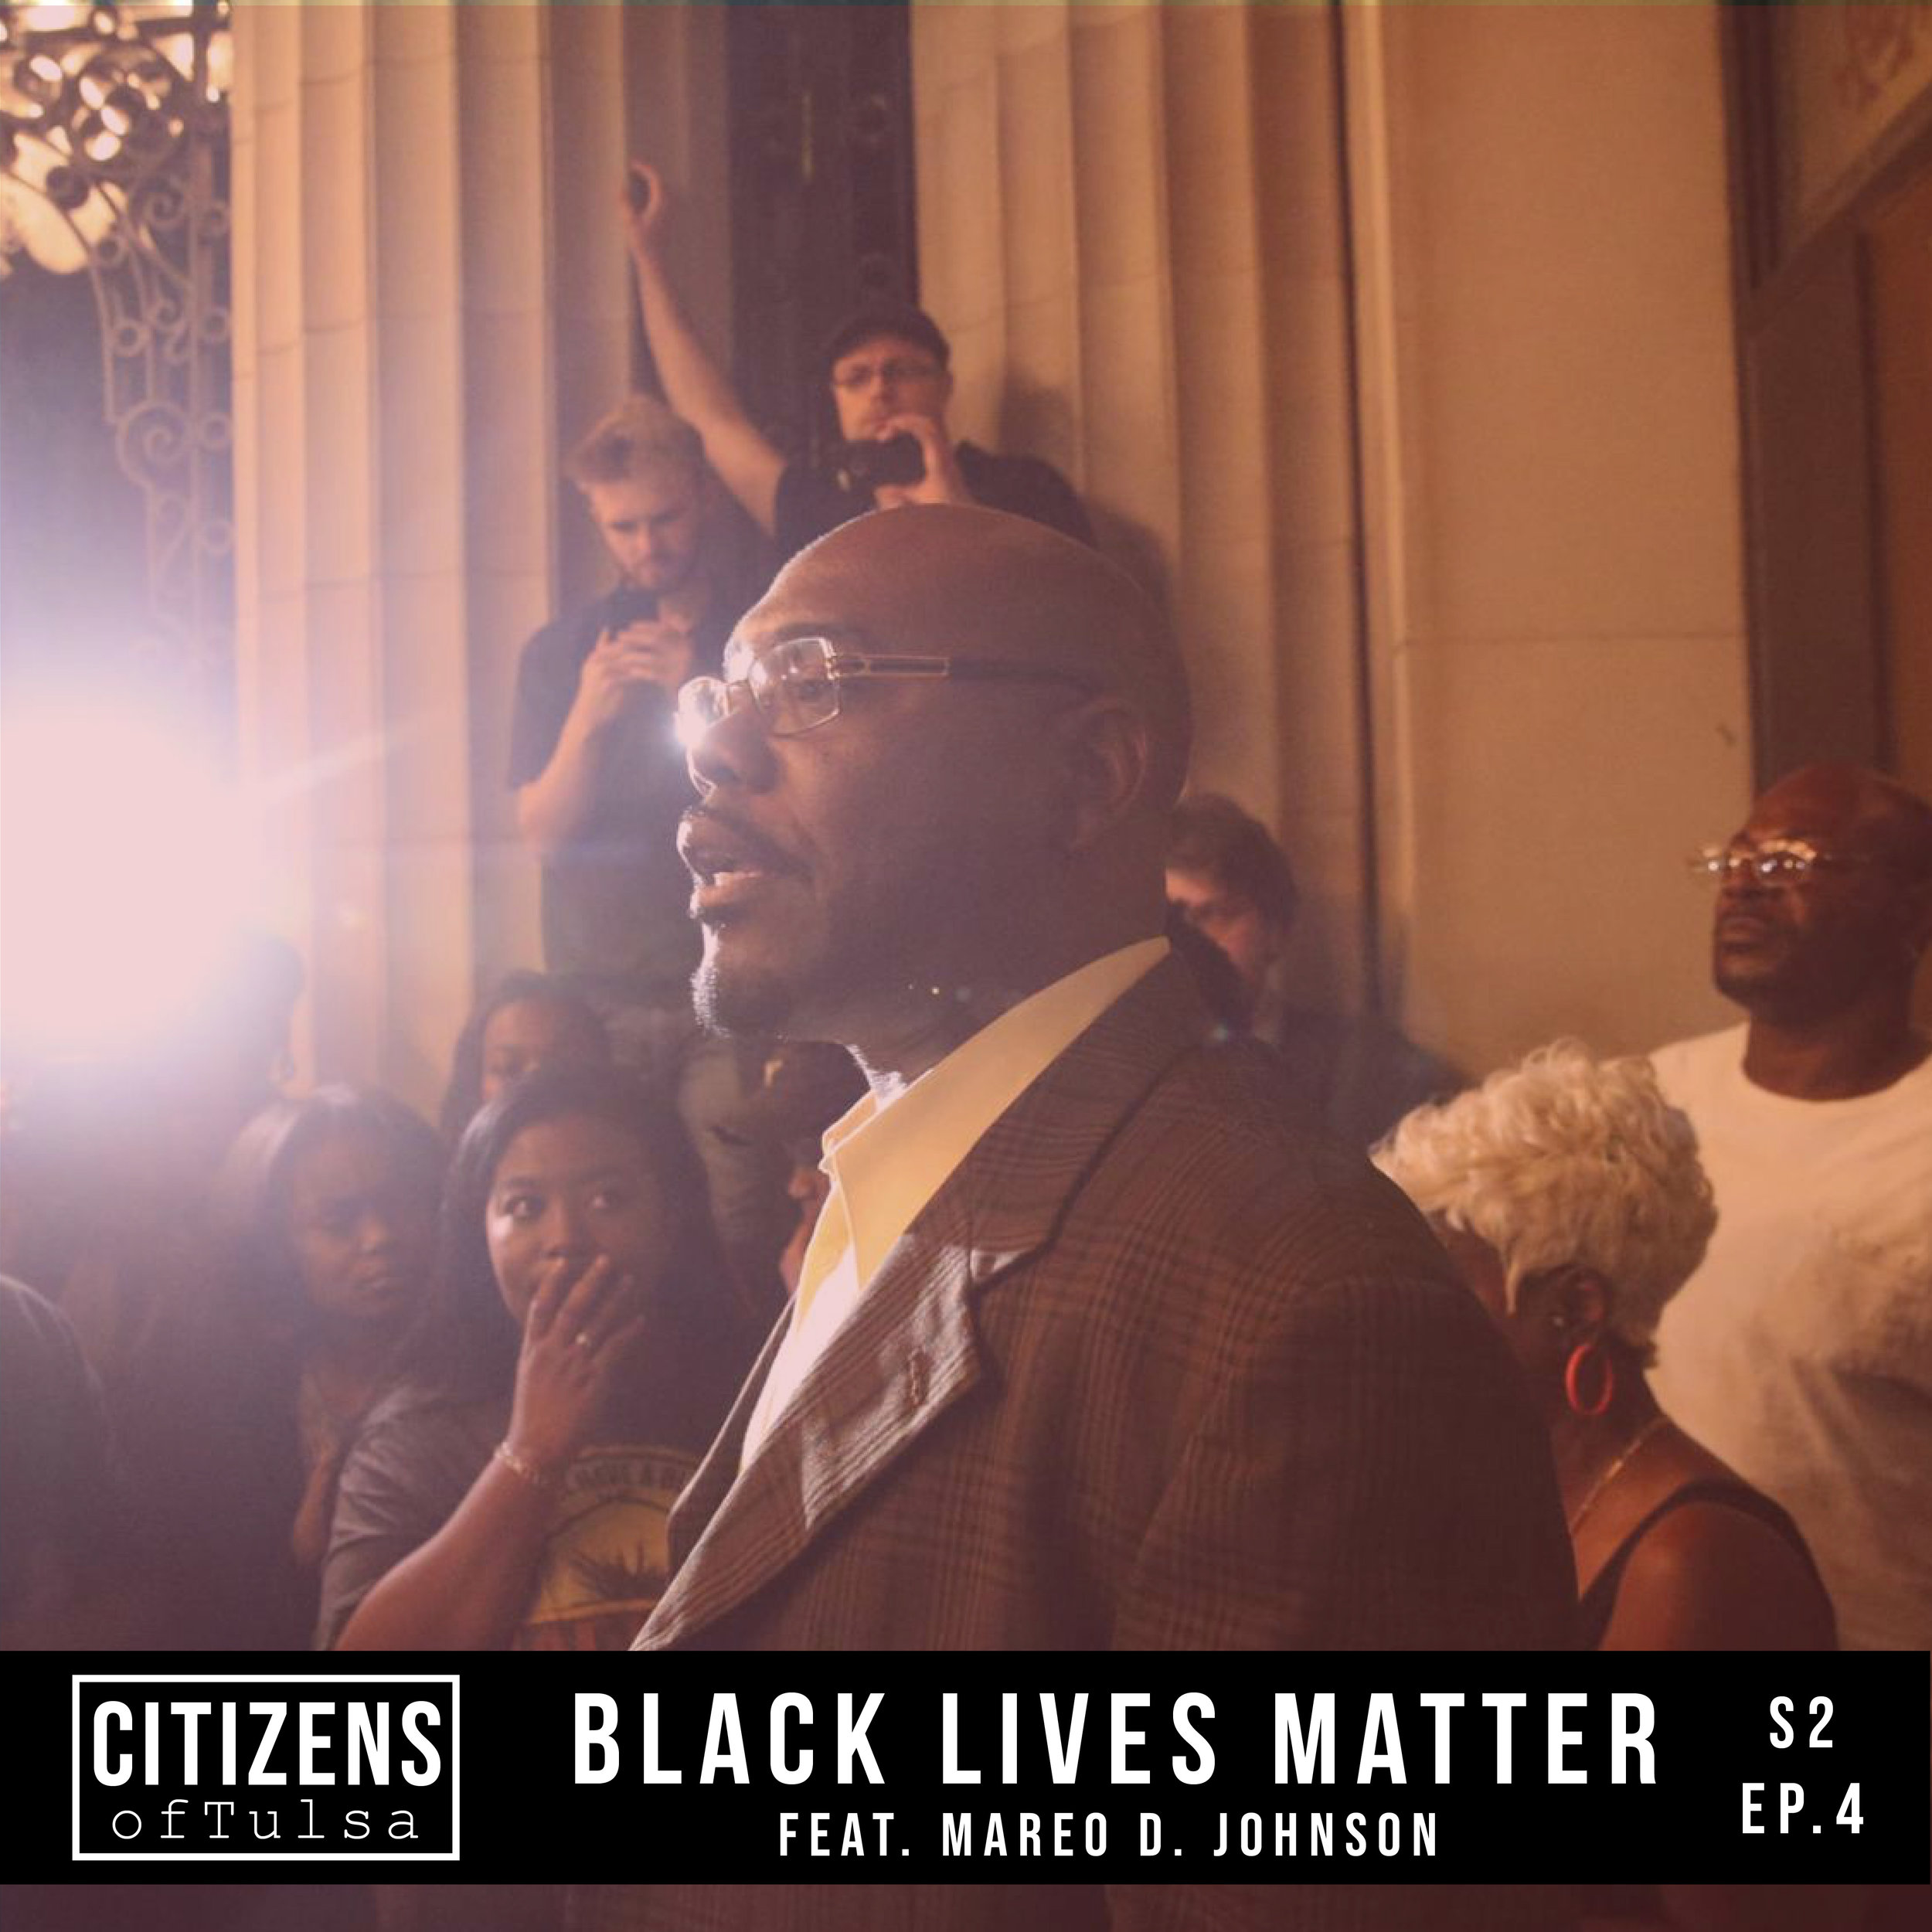 Citizens - Black Lives Matter-03.jpg